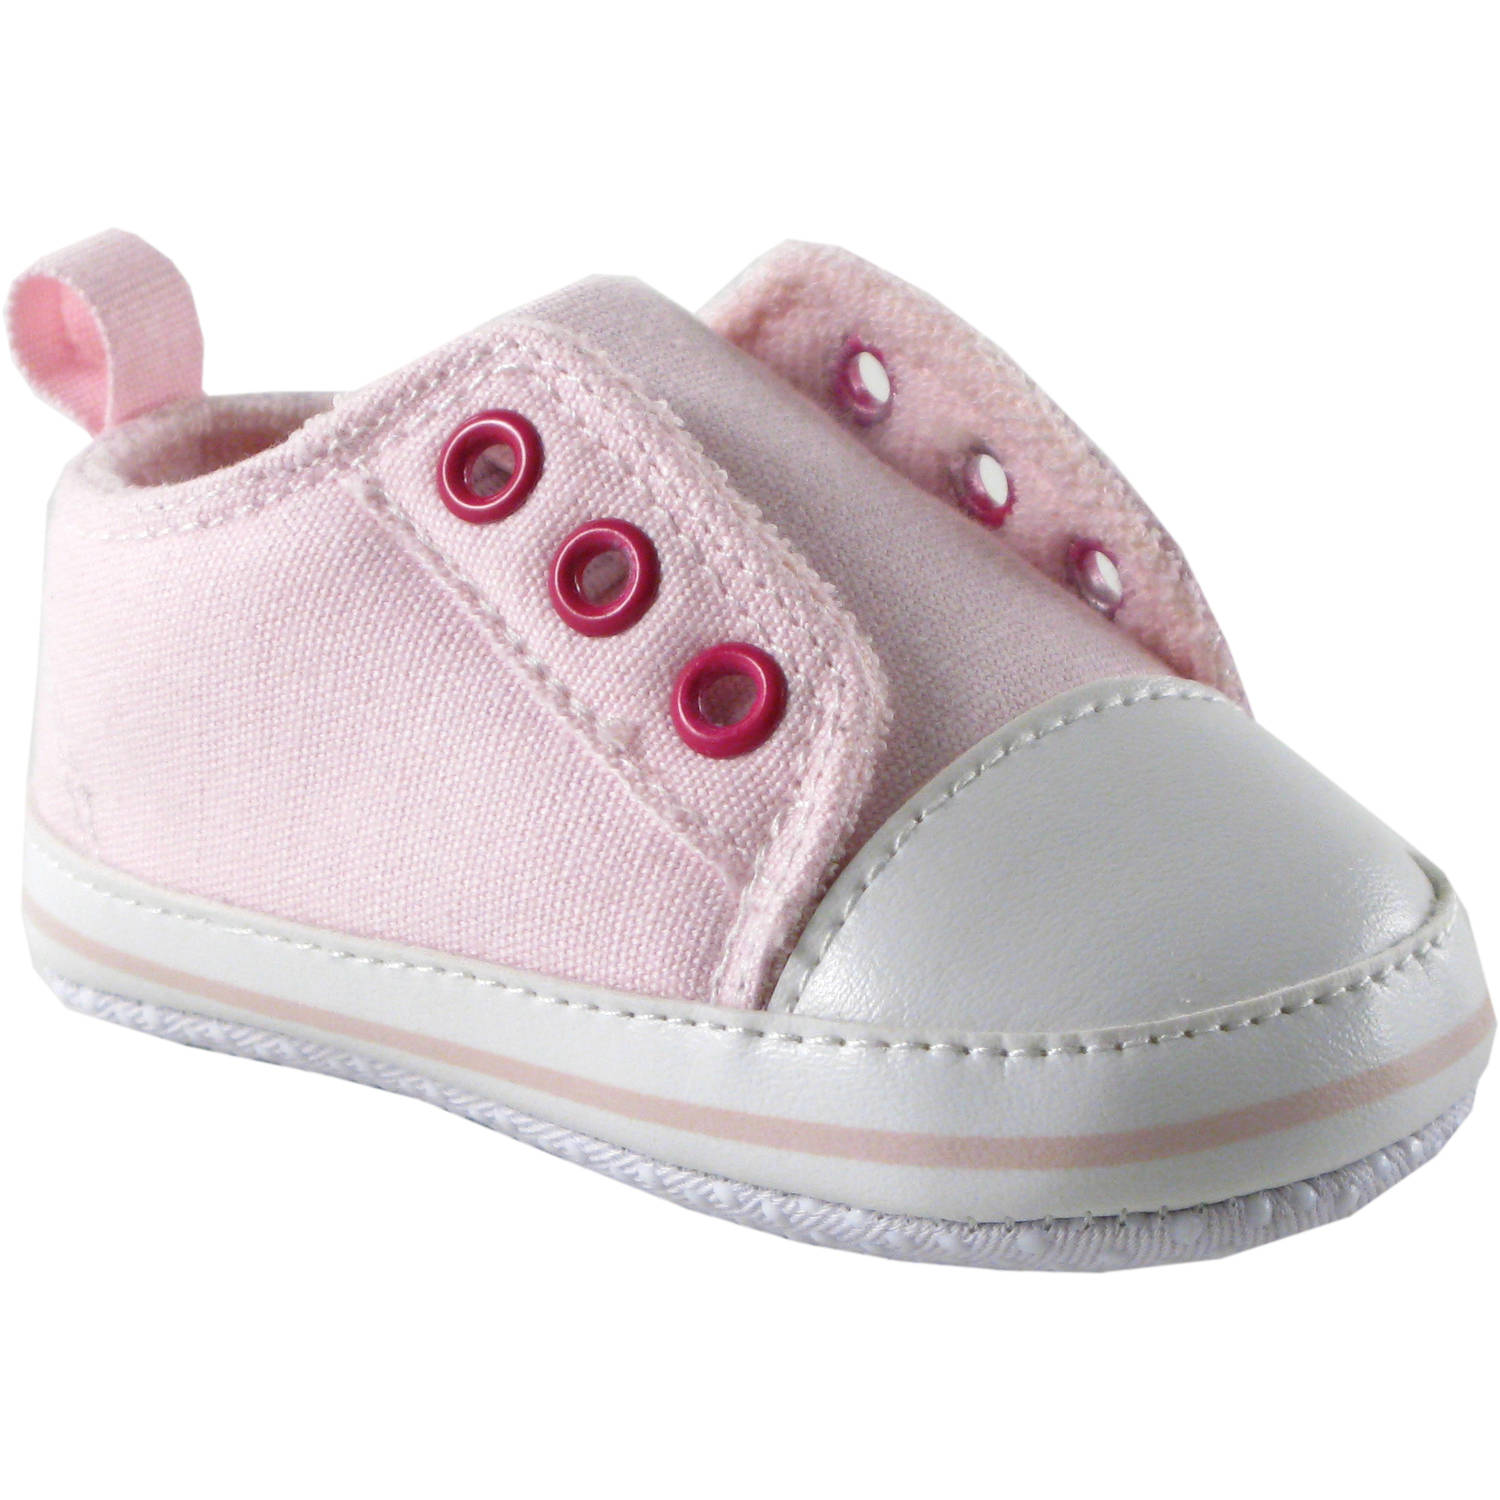 Luvable Friends Newborn Baby Girls Laceless Sneakers